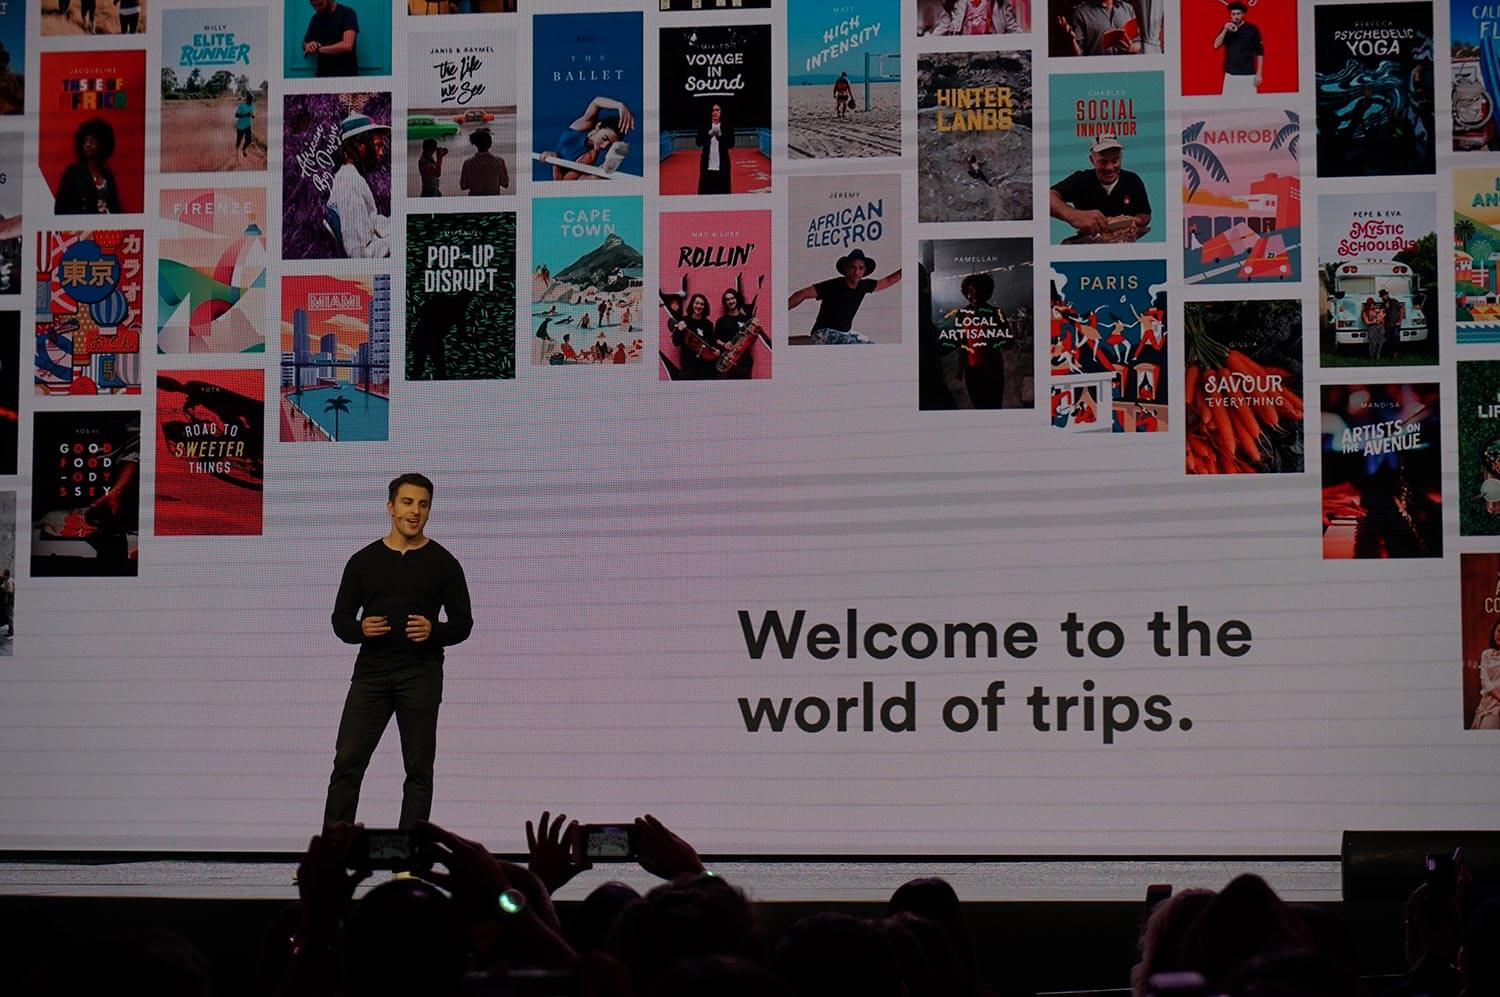 Airbnb chief executive Brian Chesky speaks about the company's expansion into being your trip concierge.